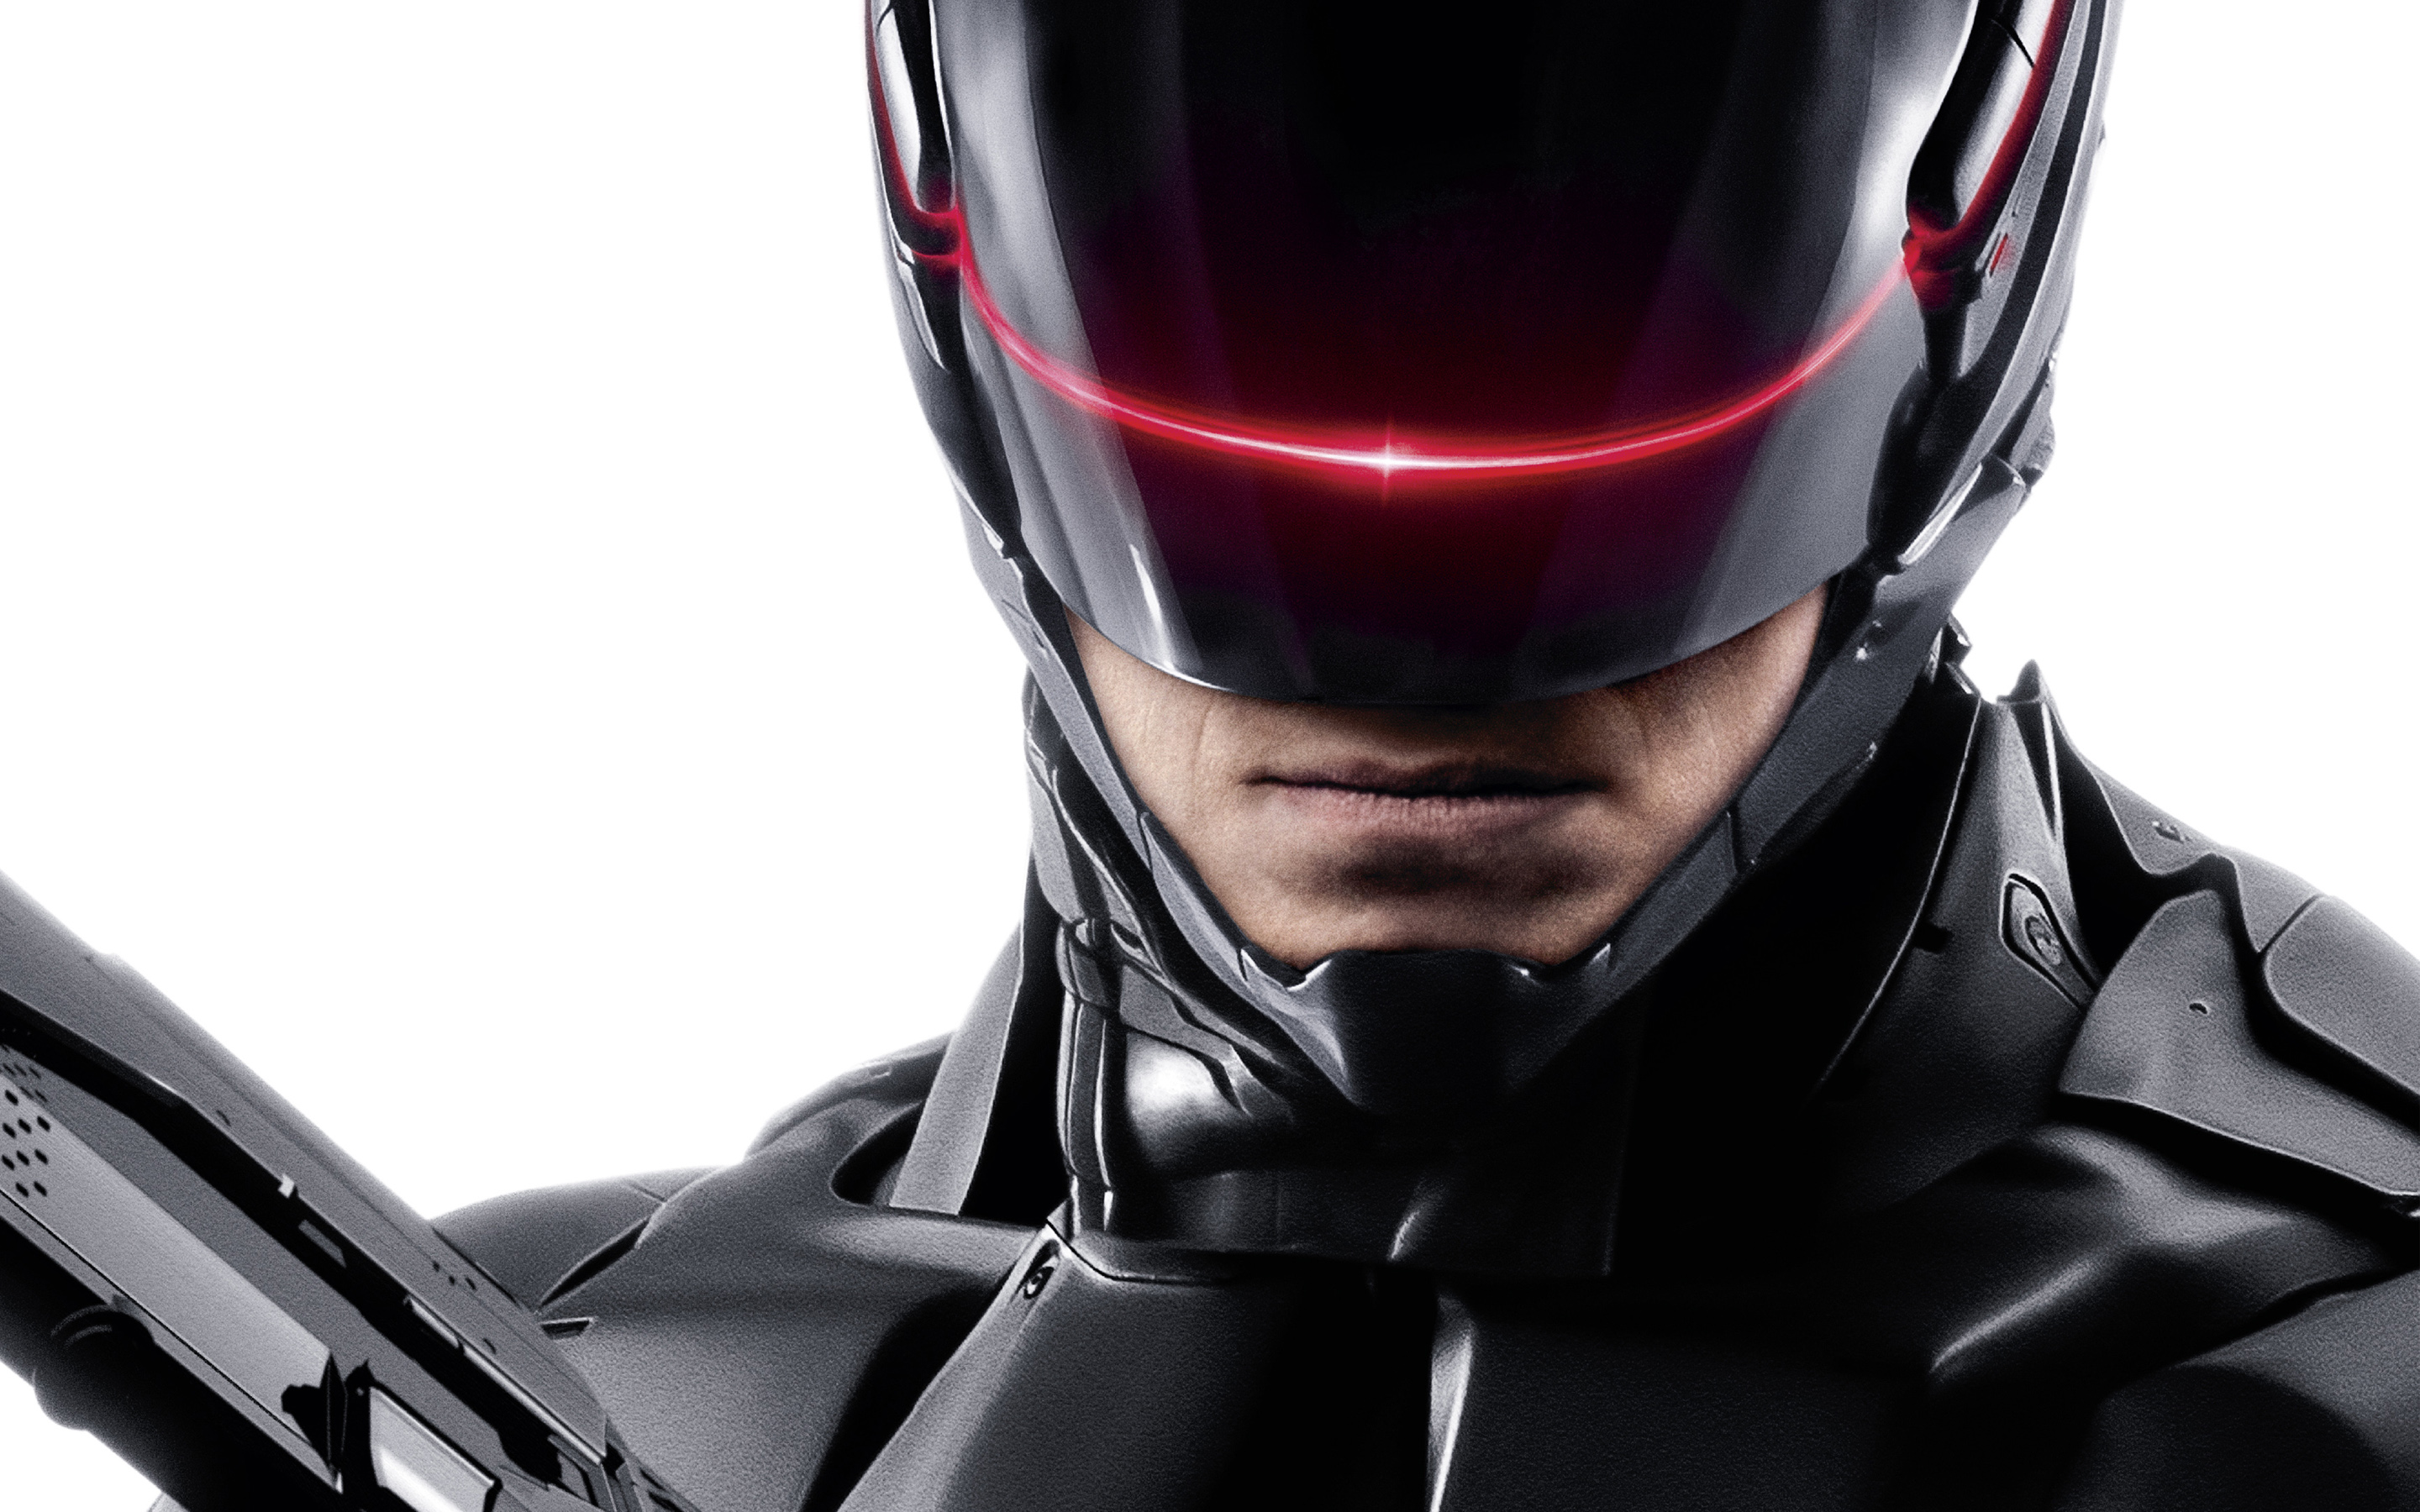 RoboCop 2014 Movie 2700.05 Kb